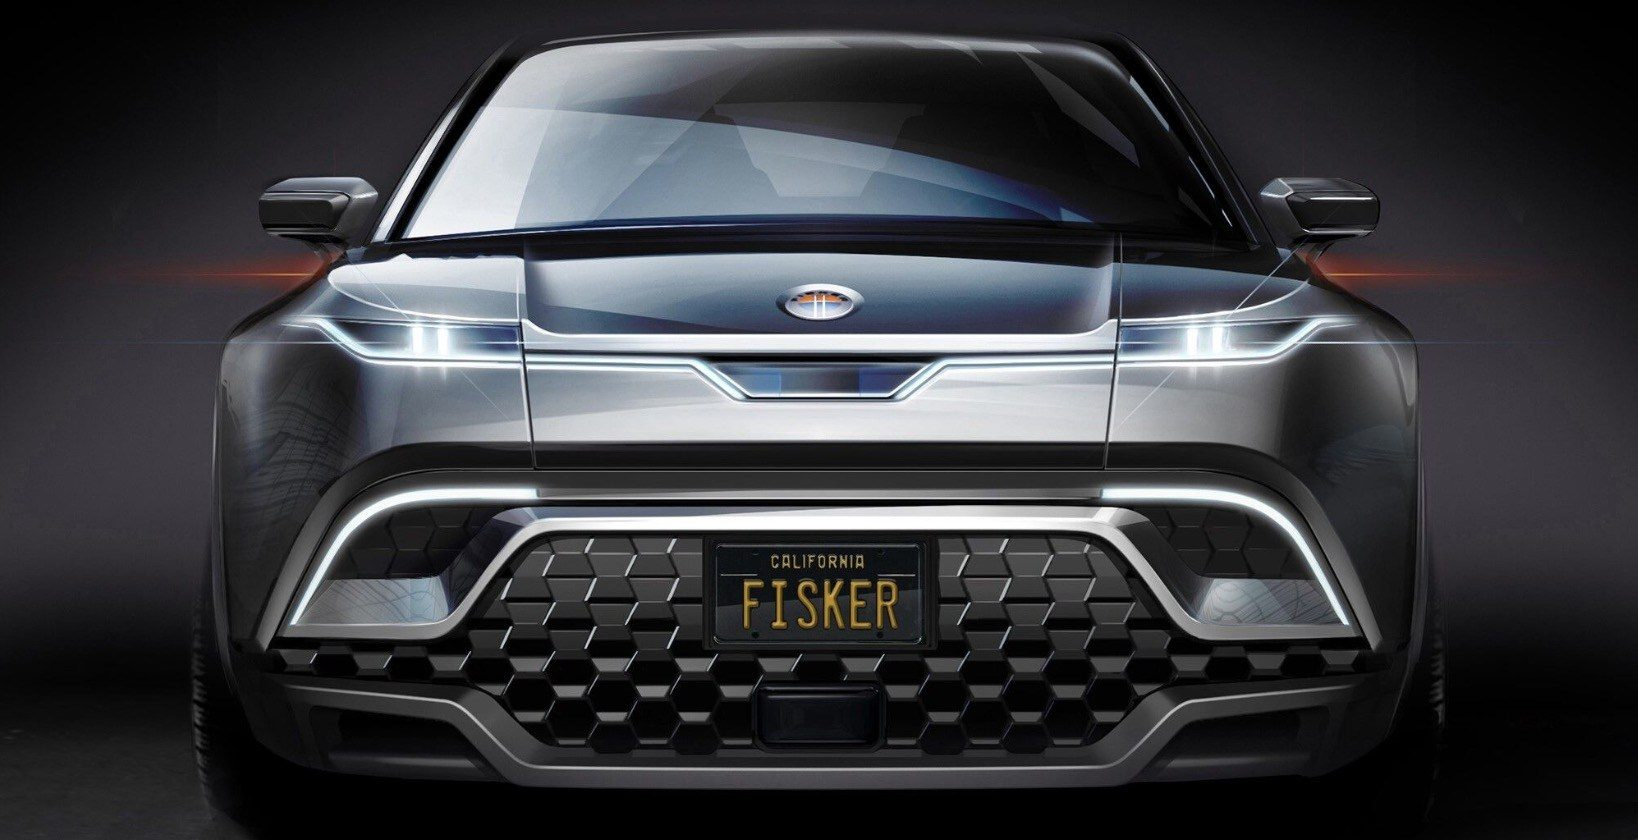 Fisker announces new sub-$40,000 electric SUV with 300 miles of range, should you get excited?